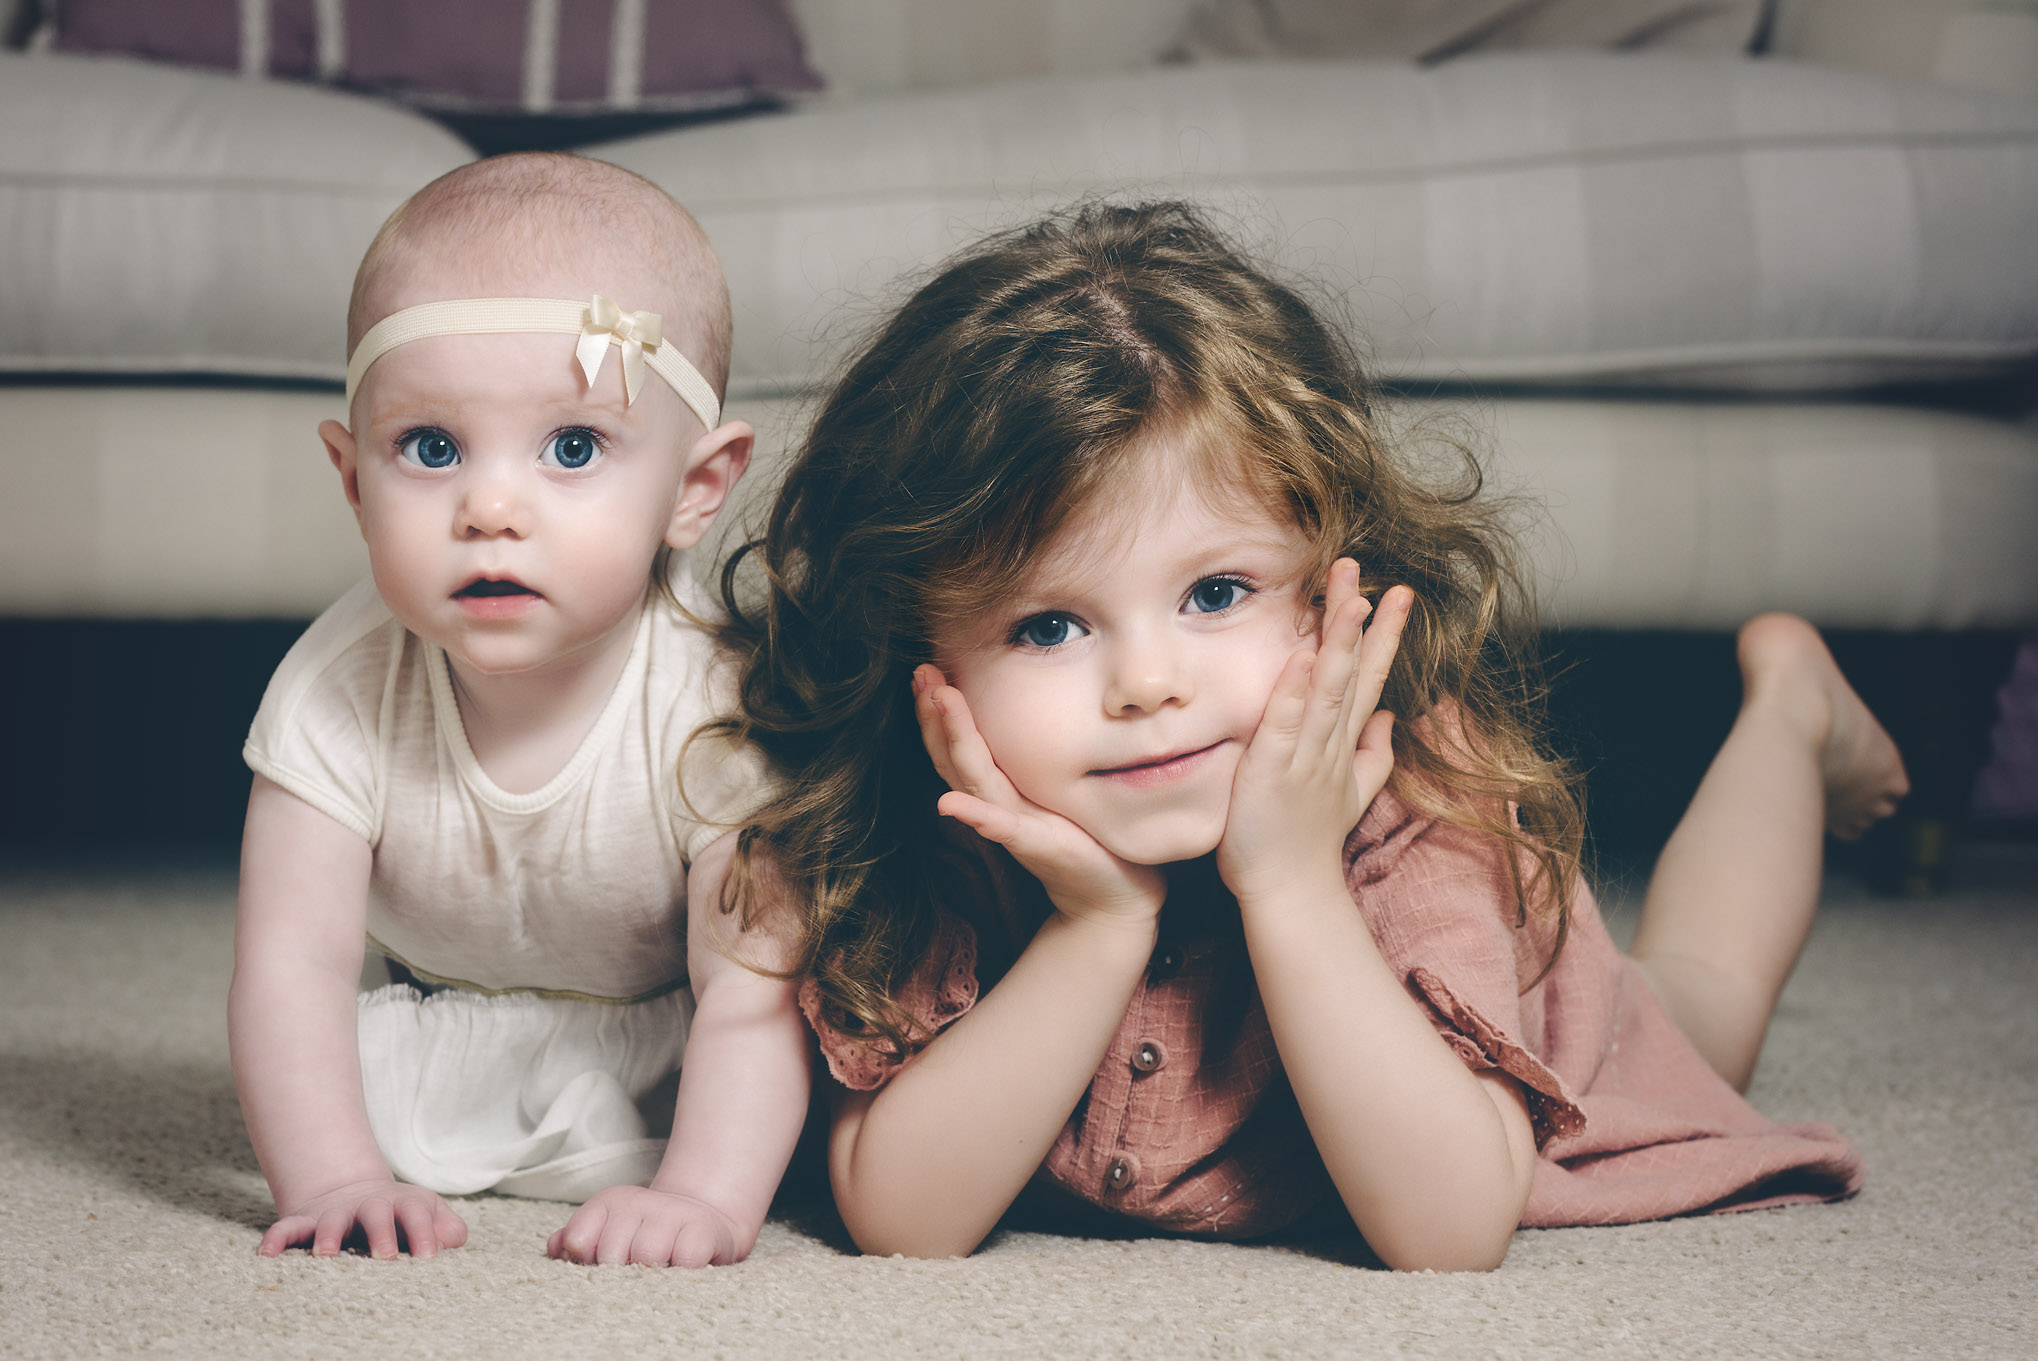 Sisters at home | Children's Photography